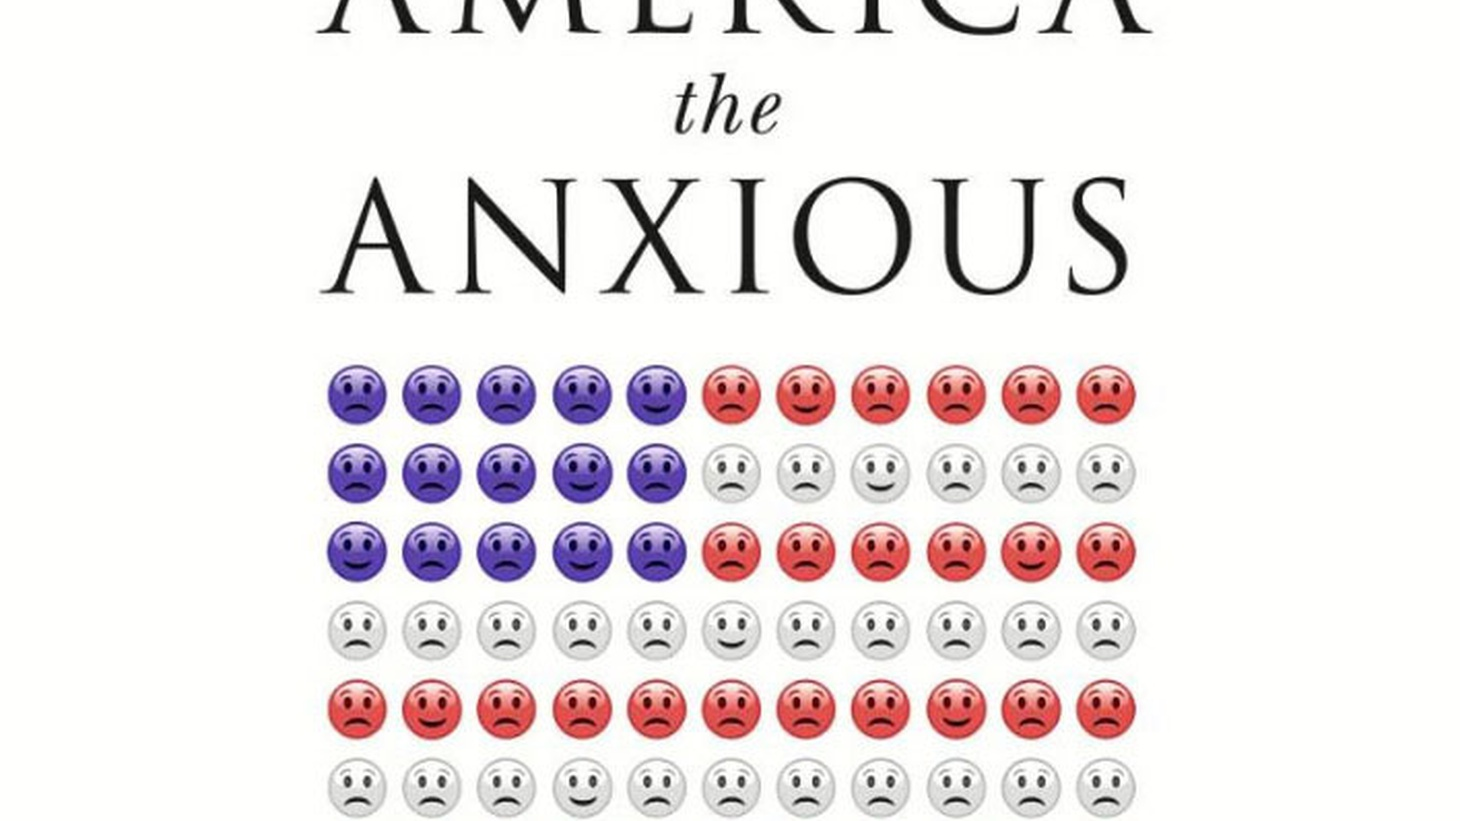 When Ruth Whippman moved to Berkeley, California from the United Kingdom, she noticed a contradiction in American culture. Americans try hard to think positively, and we spend billions in search of happiness – yet we're still so anxious. Her travels around the country led to write a new book.